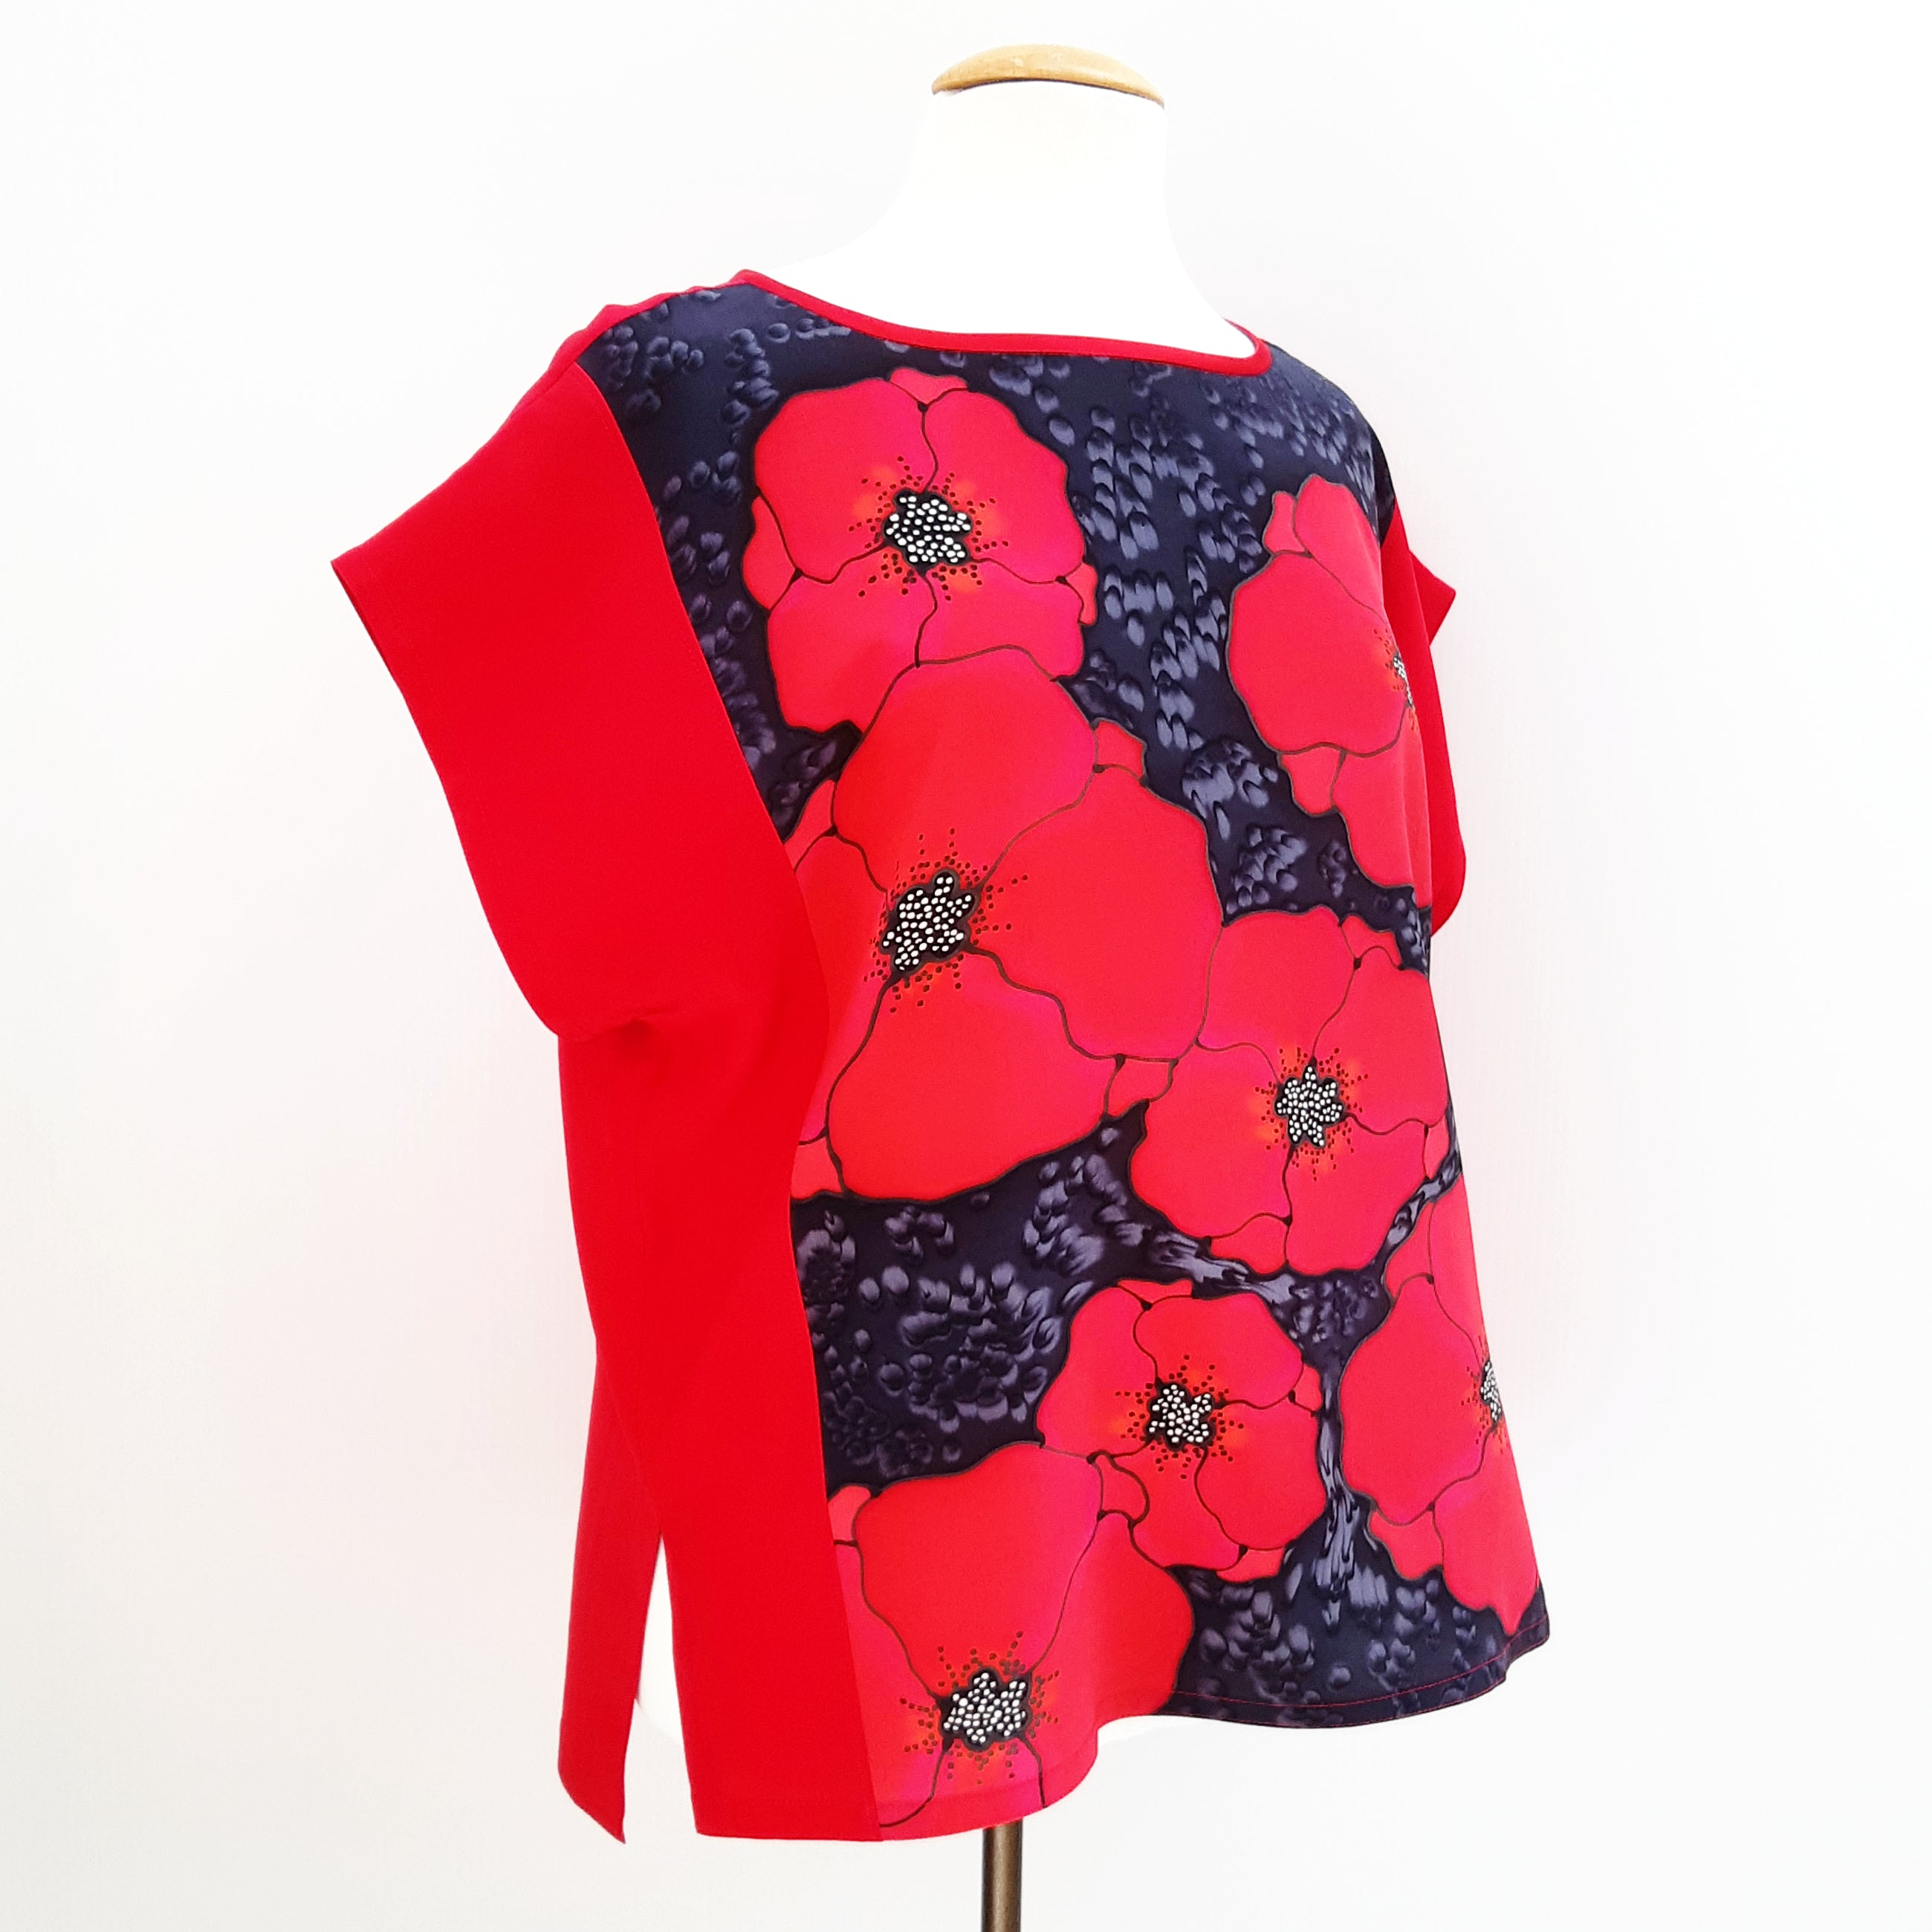 painted silk top for women red